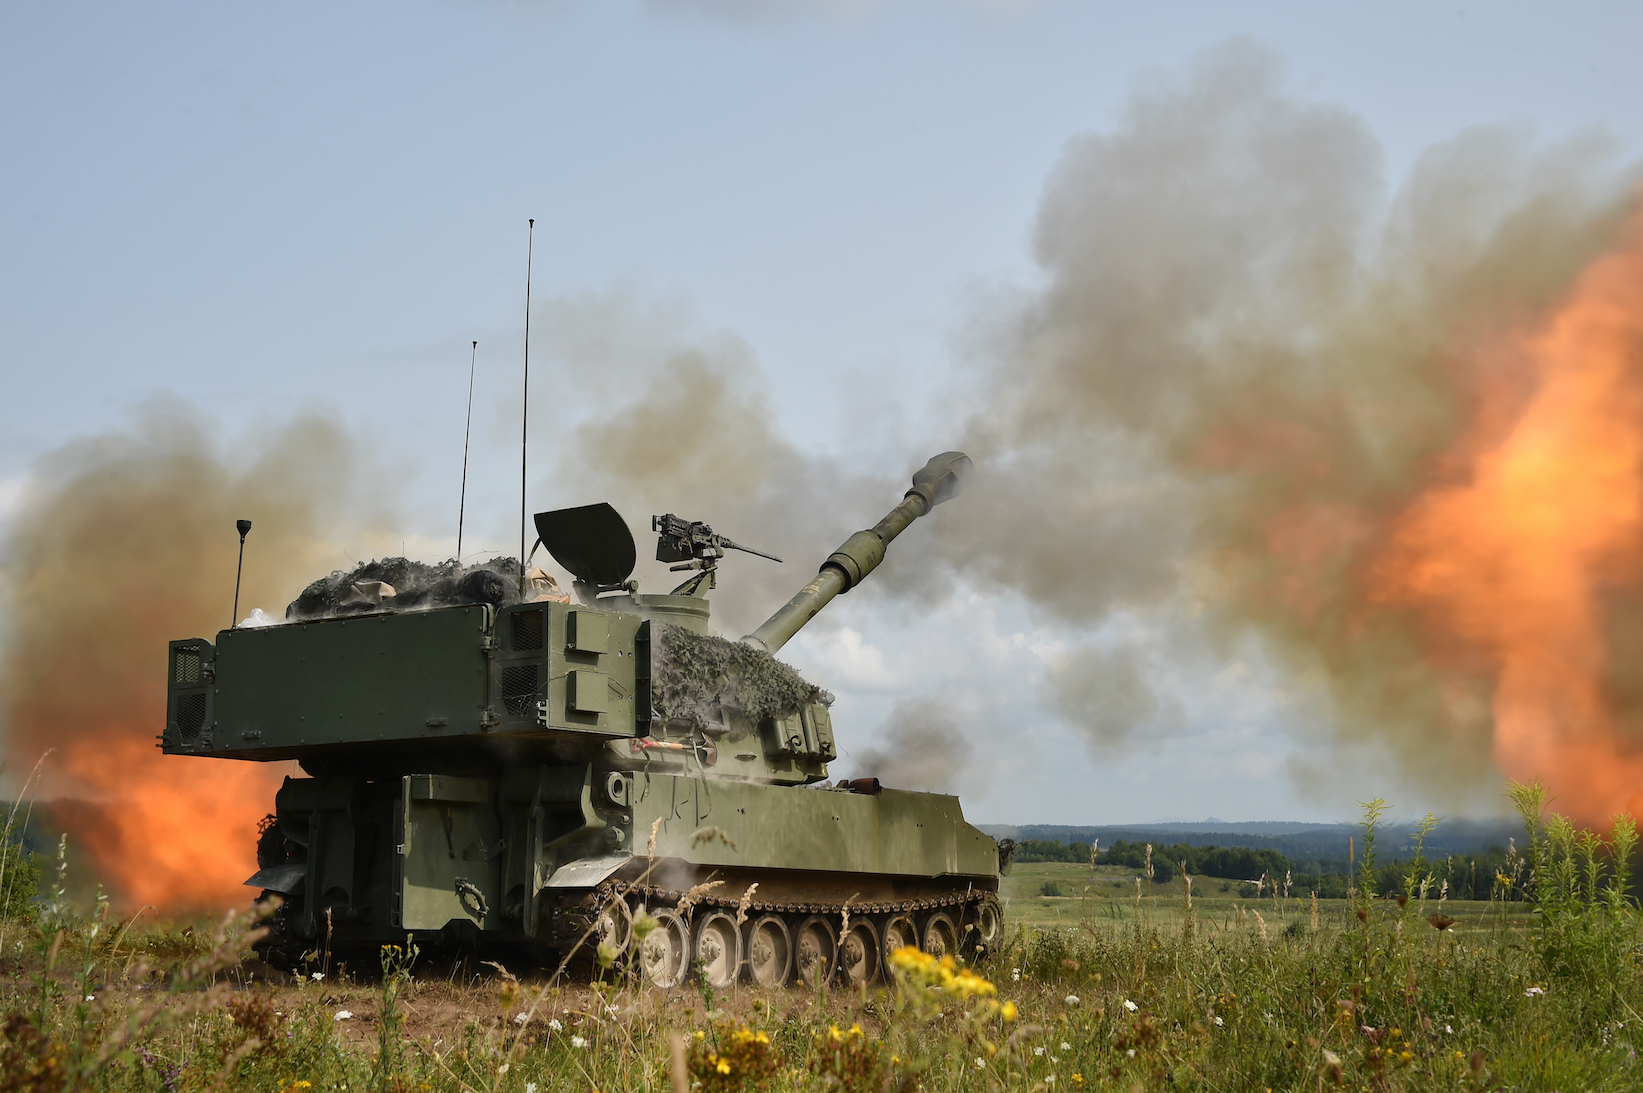 U.S. Soldiers with Bravo Battery, 3rd Battalion, 29th Field Artillery Regiment, 3rd Armored Brigade Combat Team, 4th Infantry Division, conduct a Fire Coordination Exercise with M109A6 Paladins at the 7th Army Training Command's Grafenwoehr Training Area, Germany, Aug. 21, 2017. (U.S. Army photo by Visual Information Specialist Gertrud Zach)